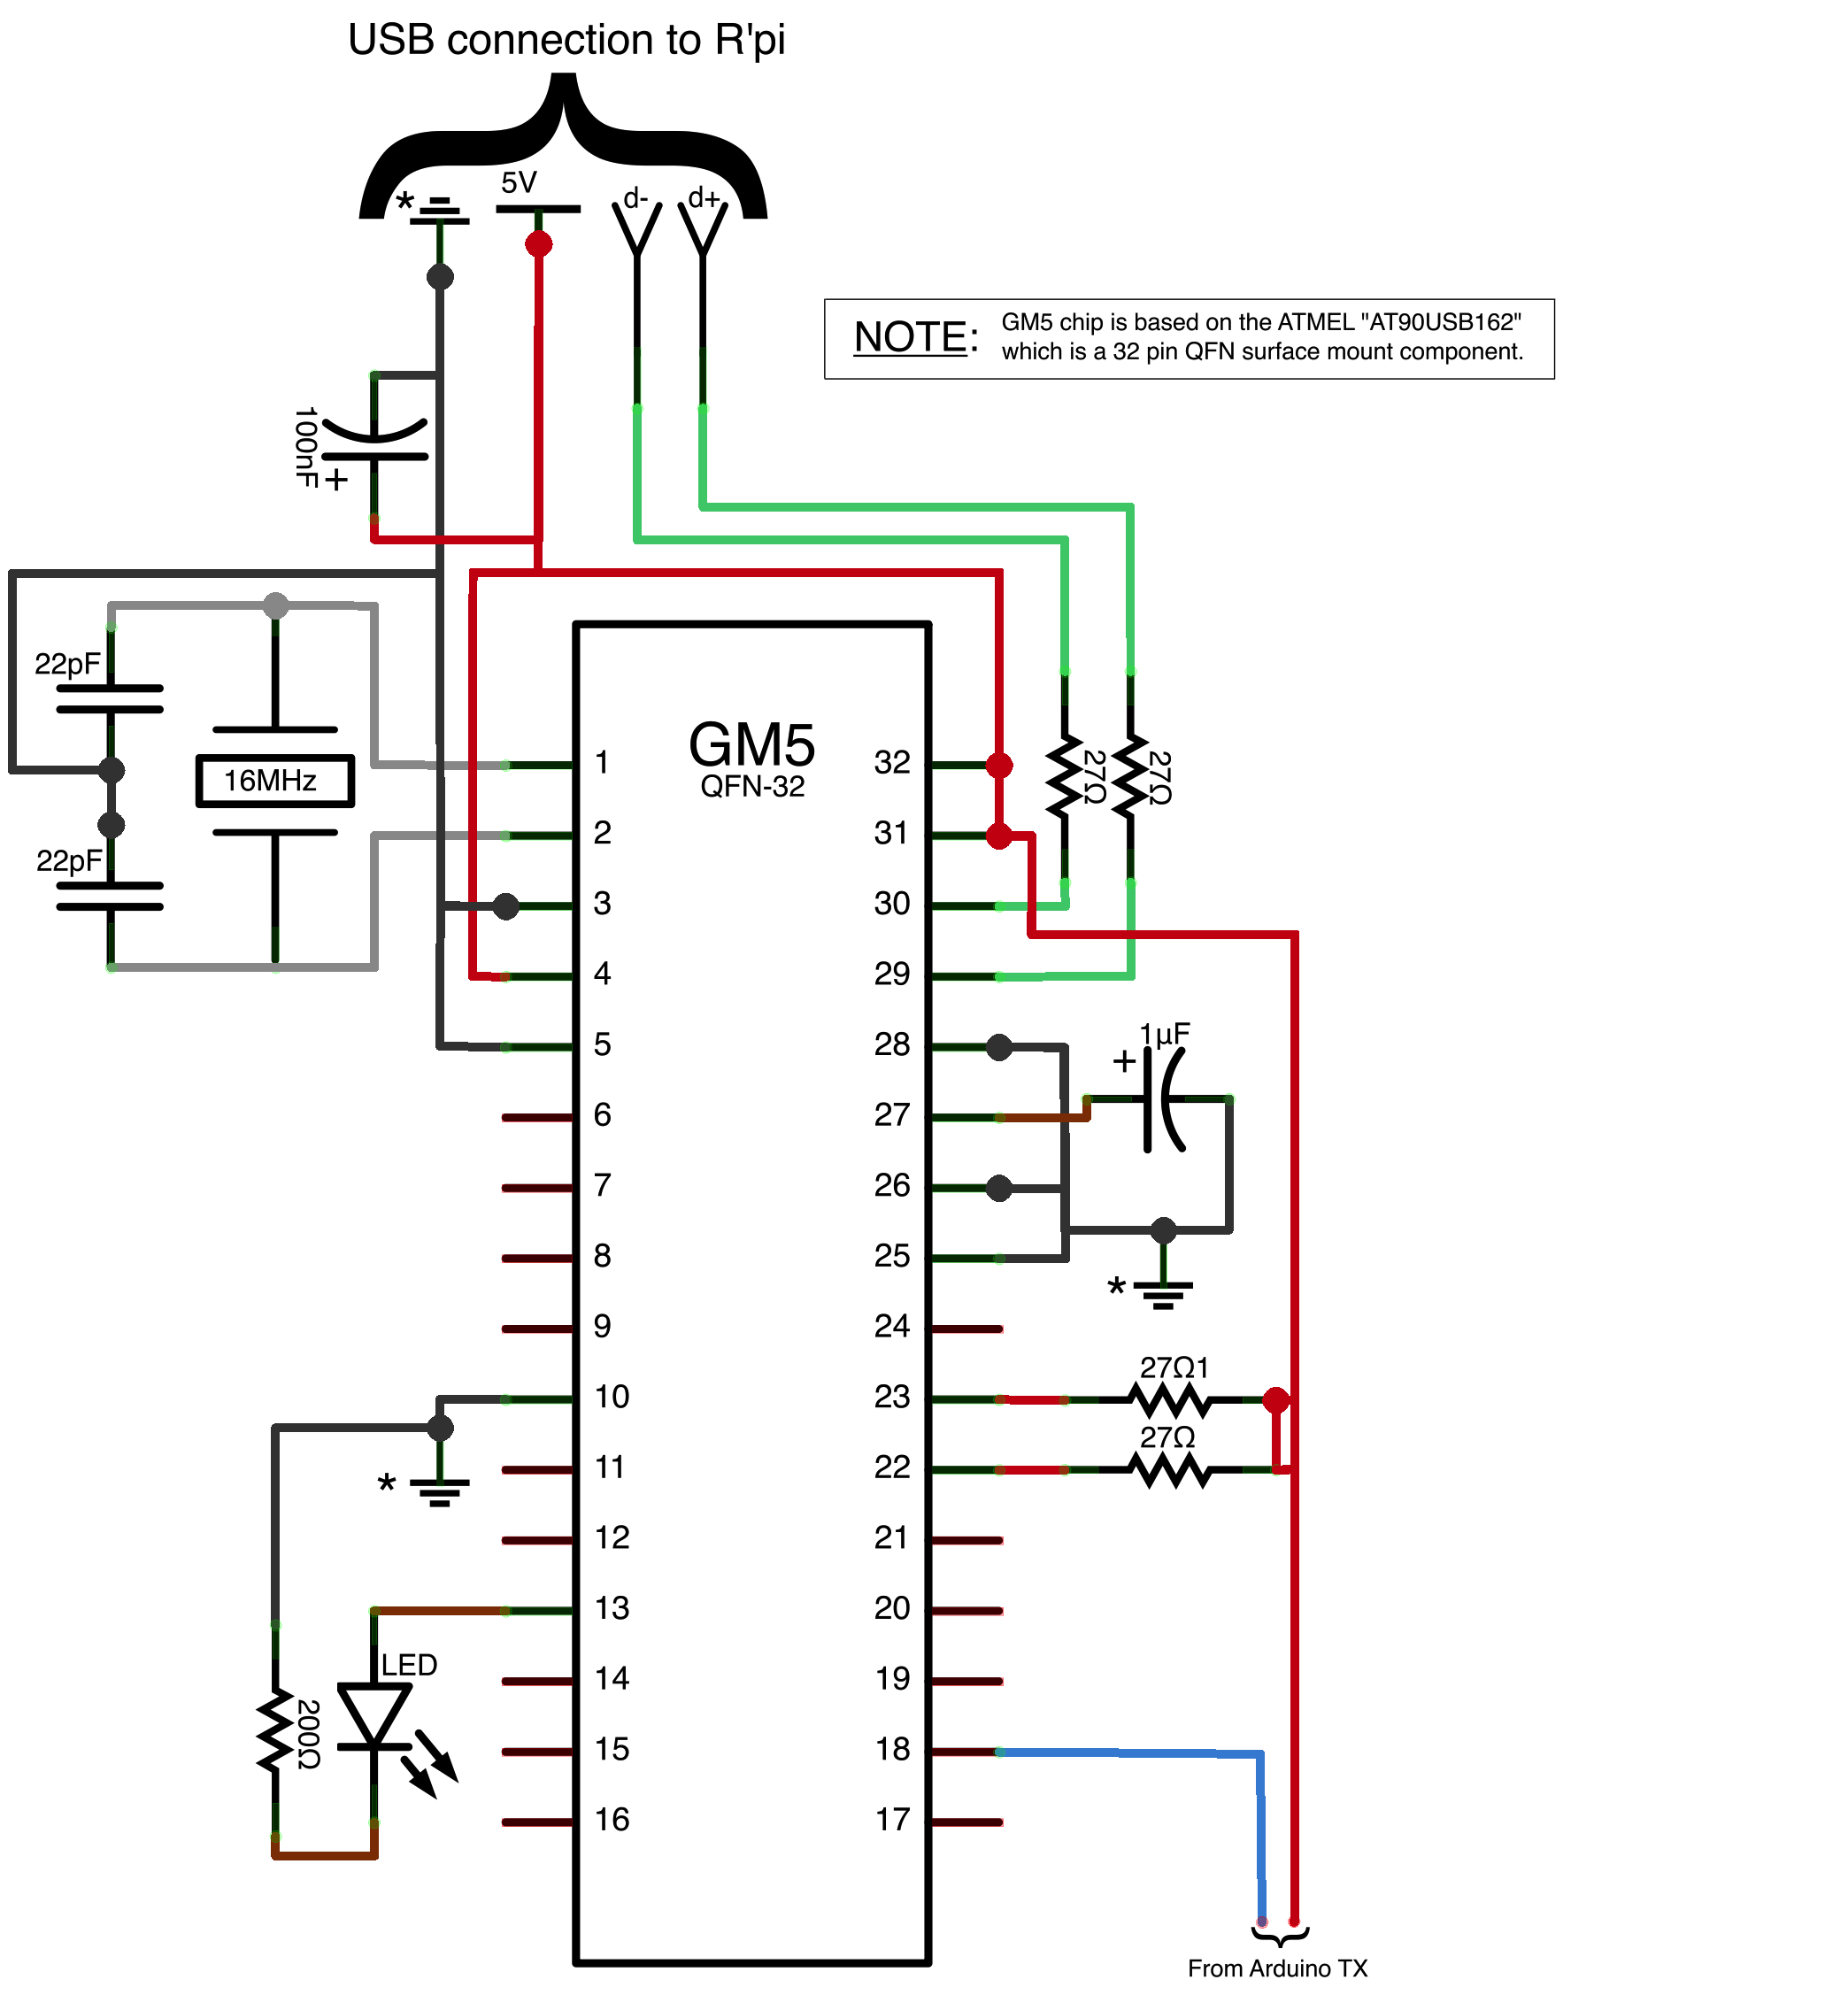 csound journal USB Cable Wiring Diagram USB Cable Wiring Diagram